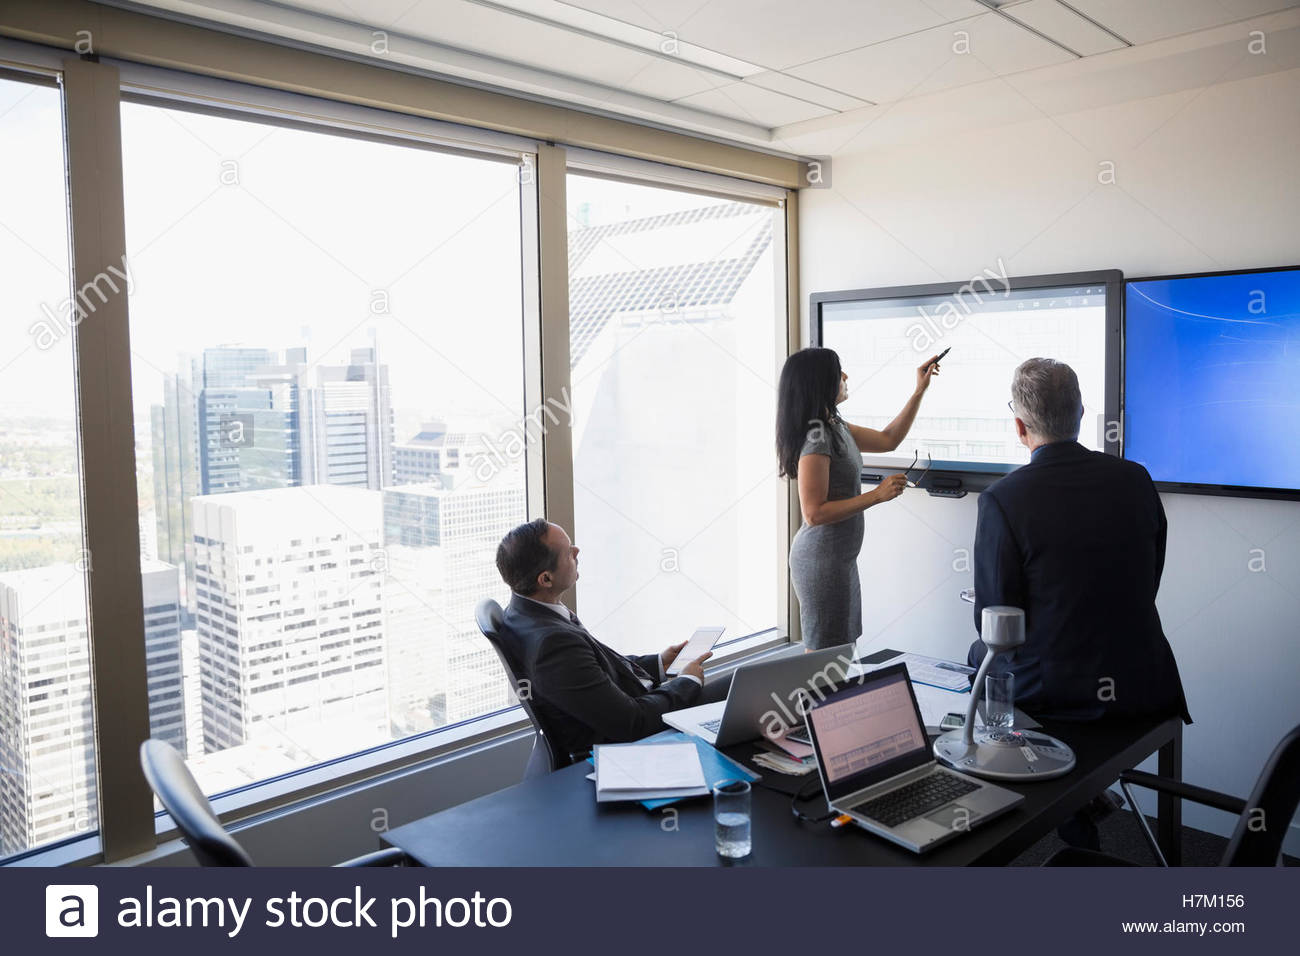 Business people meeting at large monitor in urban conference room - Stock Image